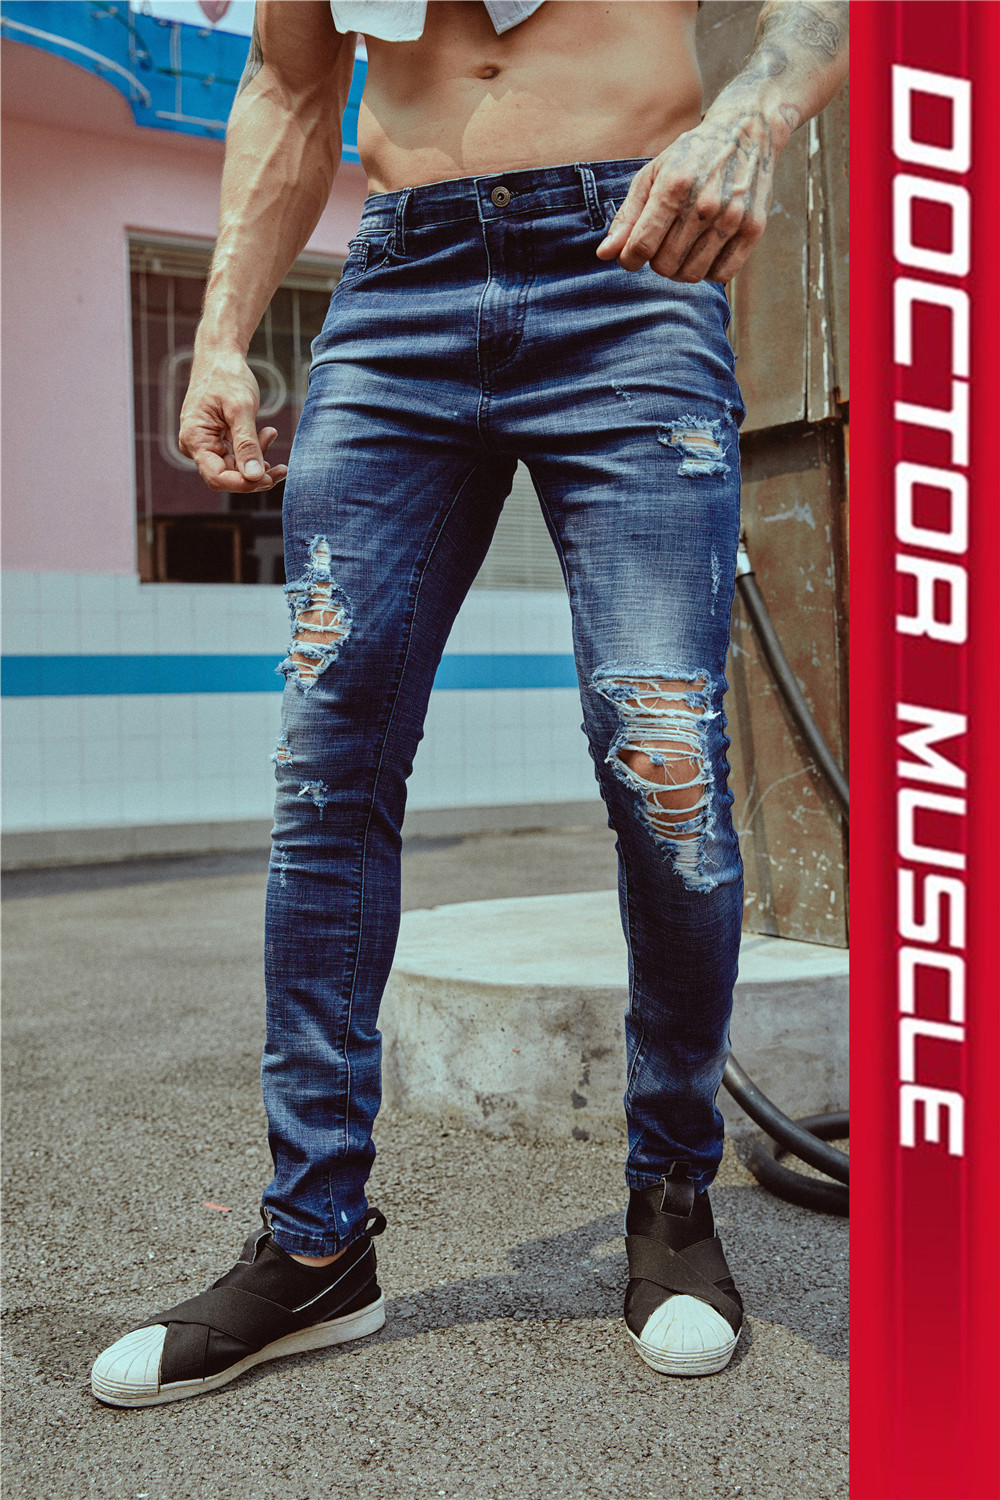 Jeans Youth fashion Doctor of muscle S M L XL 2XL Light blue dark blue Thin money Thin denim trousers motion summer youth Youthful vigor 2018